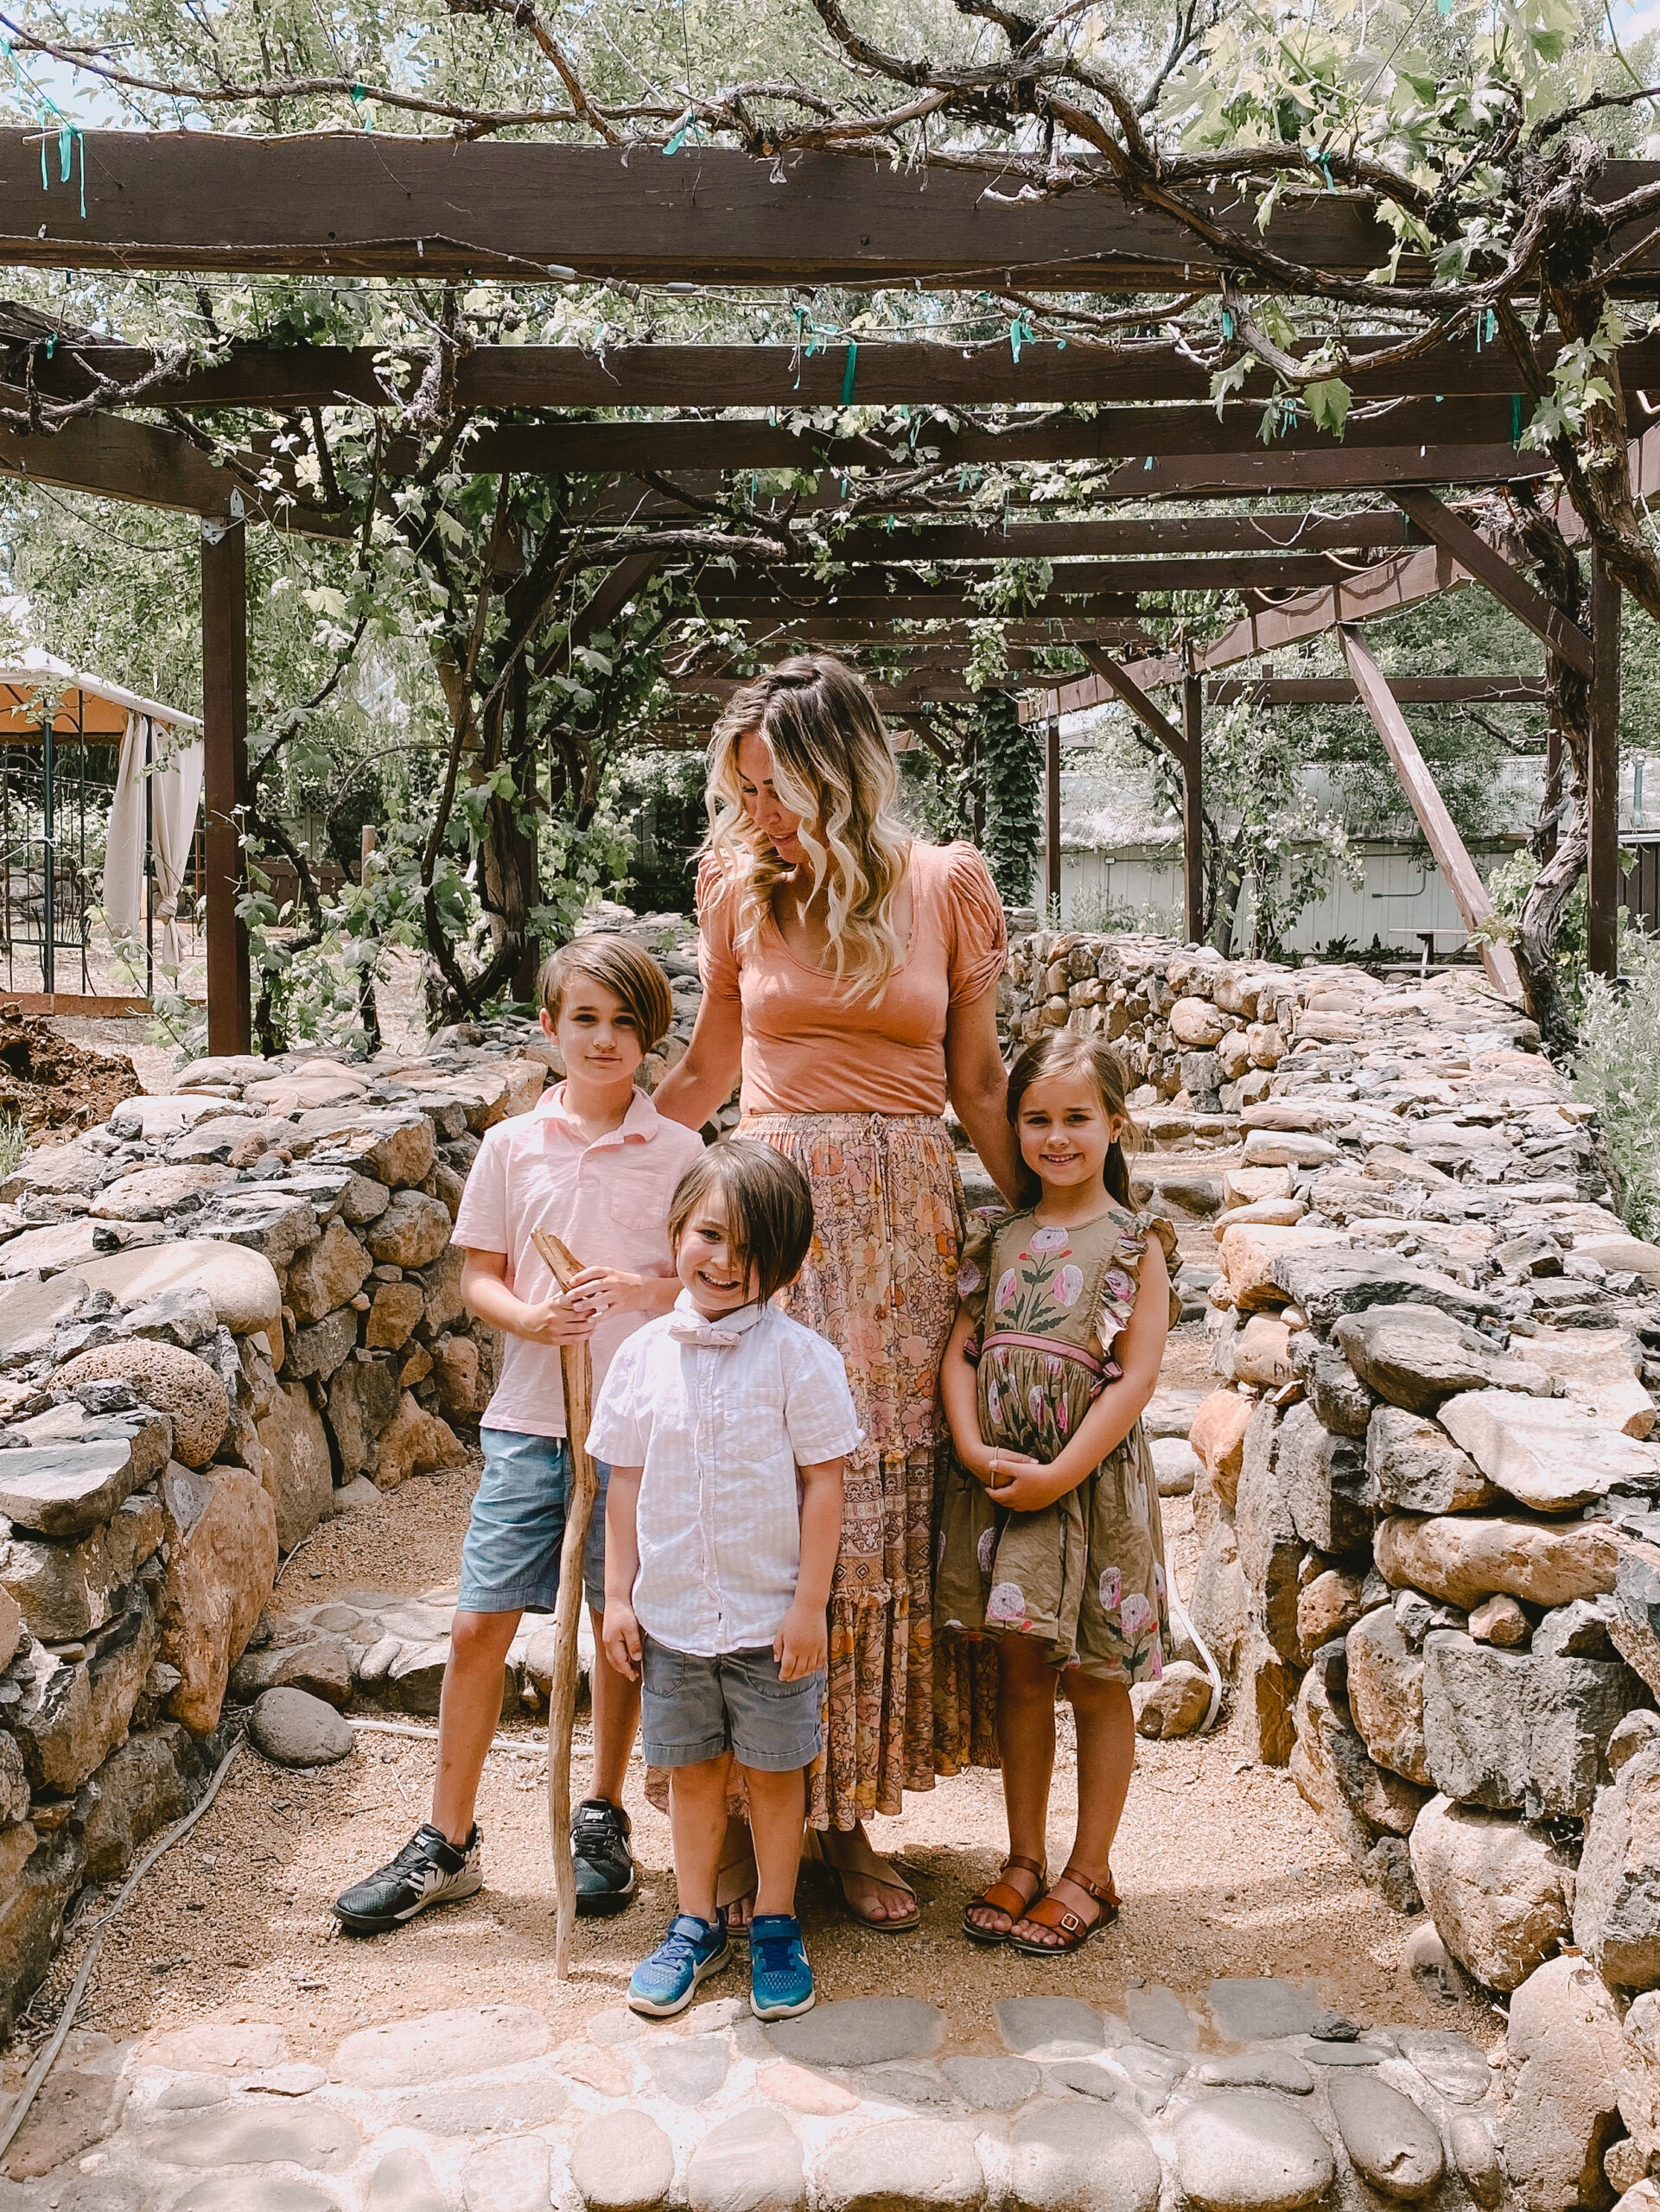 visit page springs winery for one of 6 family friendly fun things to do in arizona in the spring #thelovedesignedlife #winetasting #funwithkids #pagesprings #arizona